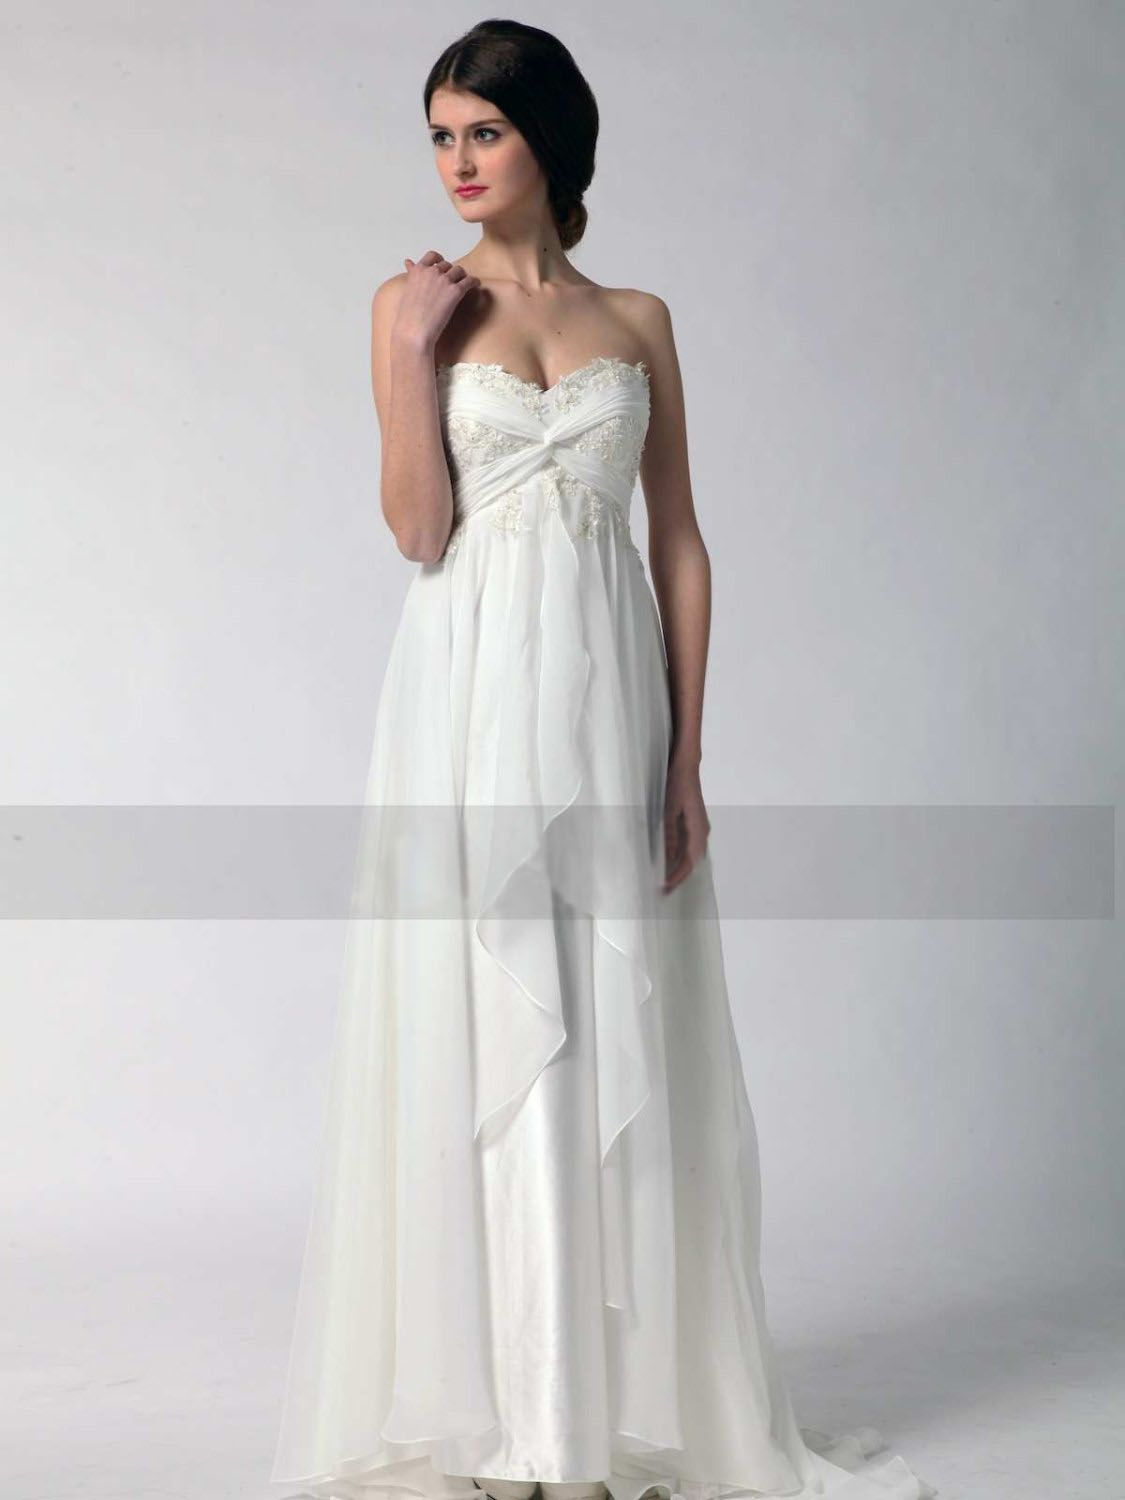 Maternity casual wedding dress  Summer beach wedding dress features lace appliques on the bodice